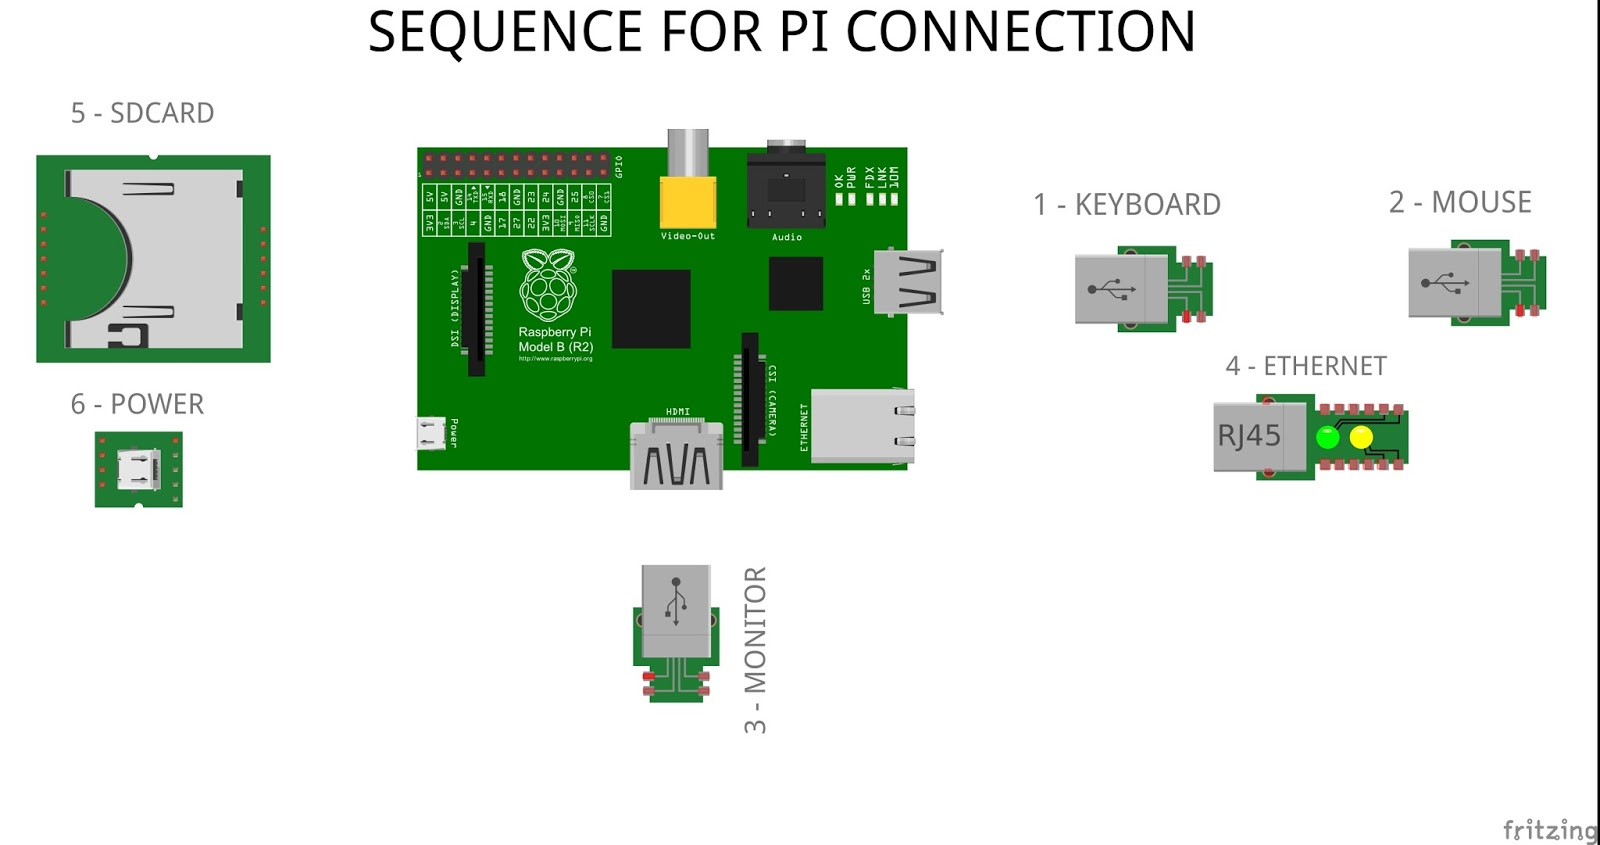 02 Raspiserie How To Flash An Sd Card For Raspberry Pi Usb Mouse Wiring Diagram Power Plug In Your Keyboard A Monitor Ethernet Cable Plugged Into Home Router Insert And Attach The